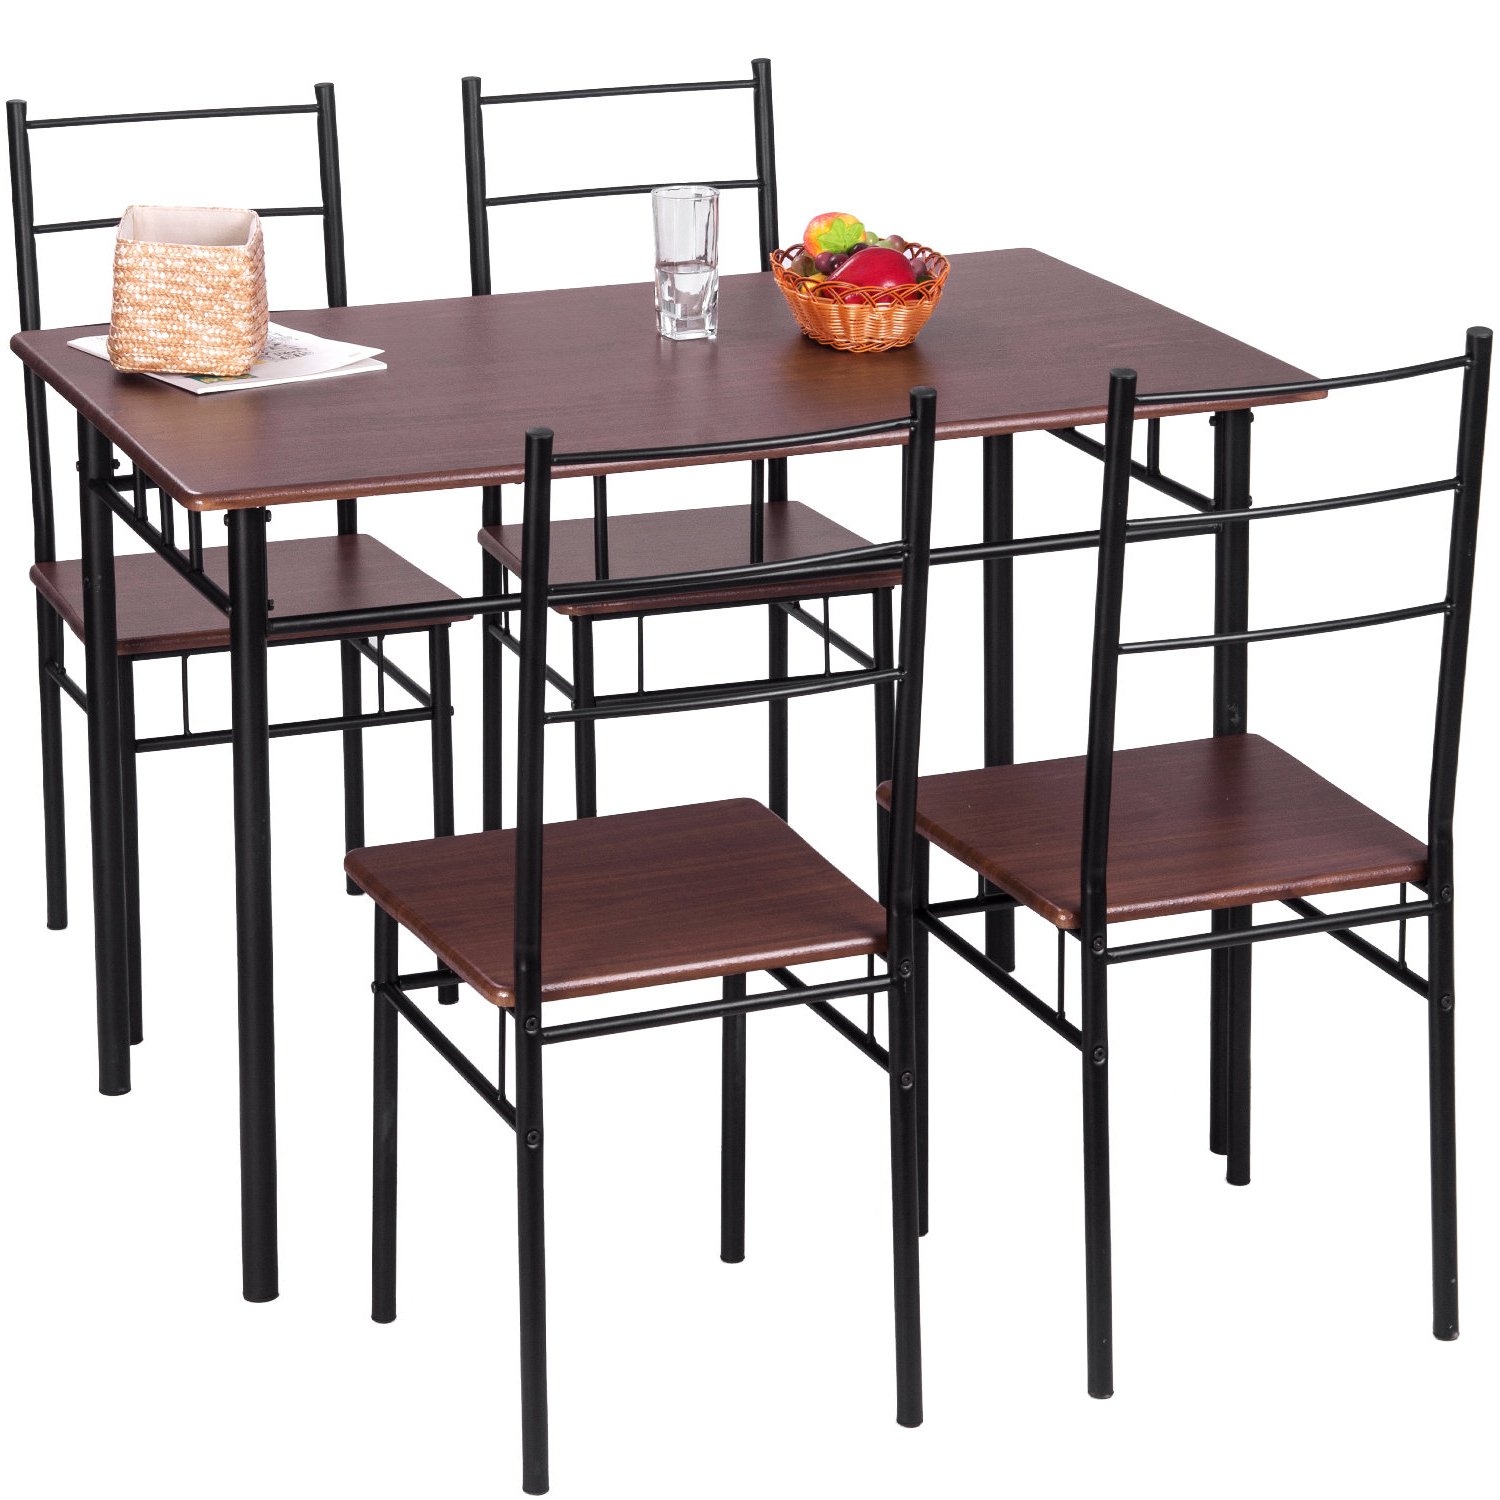 Most Recently Released Lightle 5 Piece Breakfast Nook Dining Sets Throughout 5 Piece Breakfast Nook Dining Set (View 17 of 20)